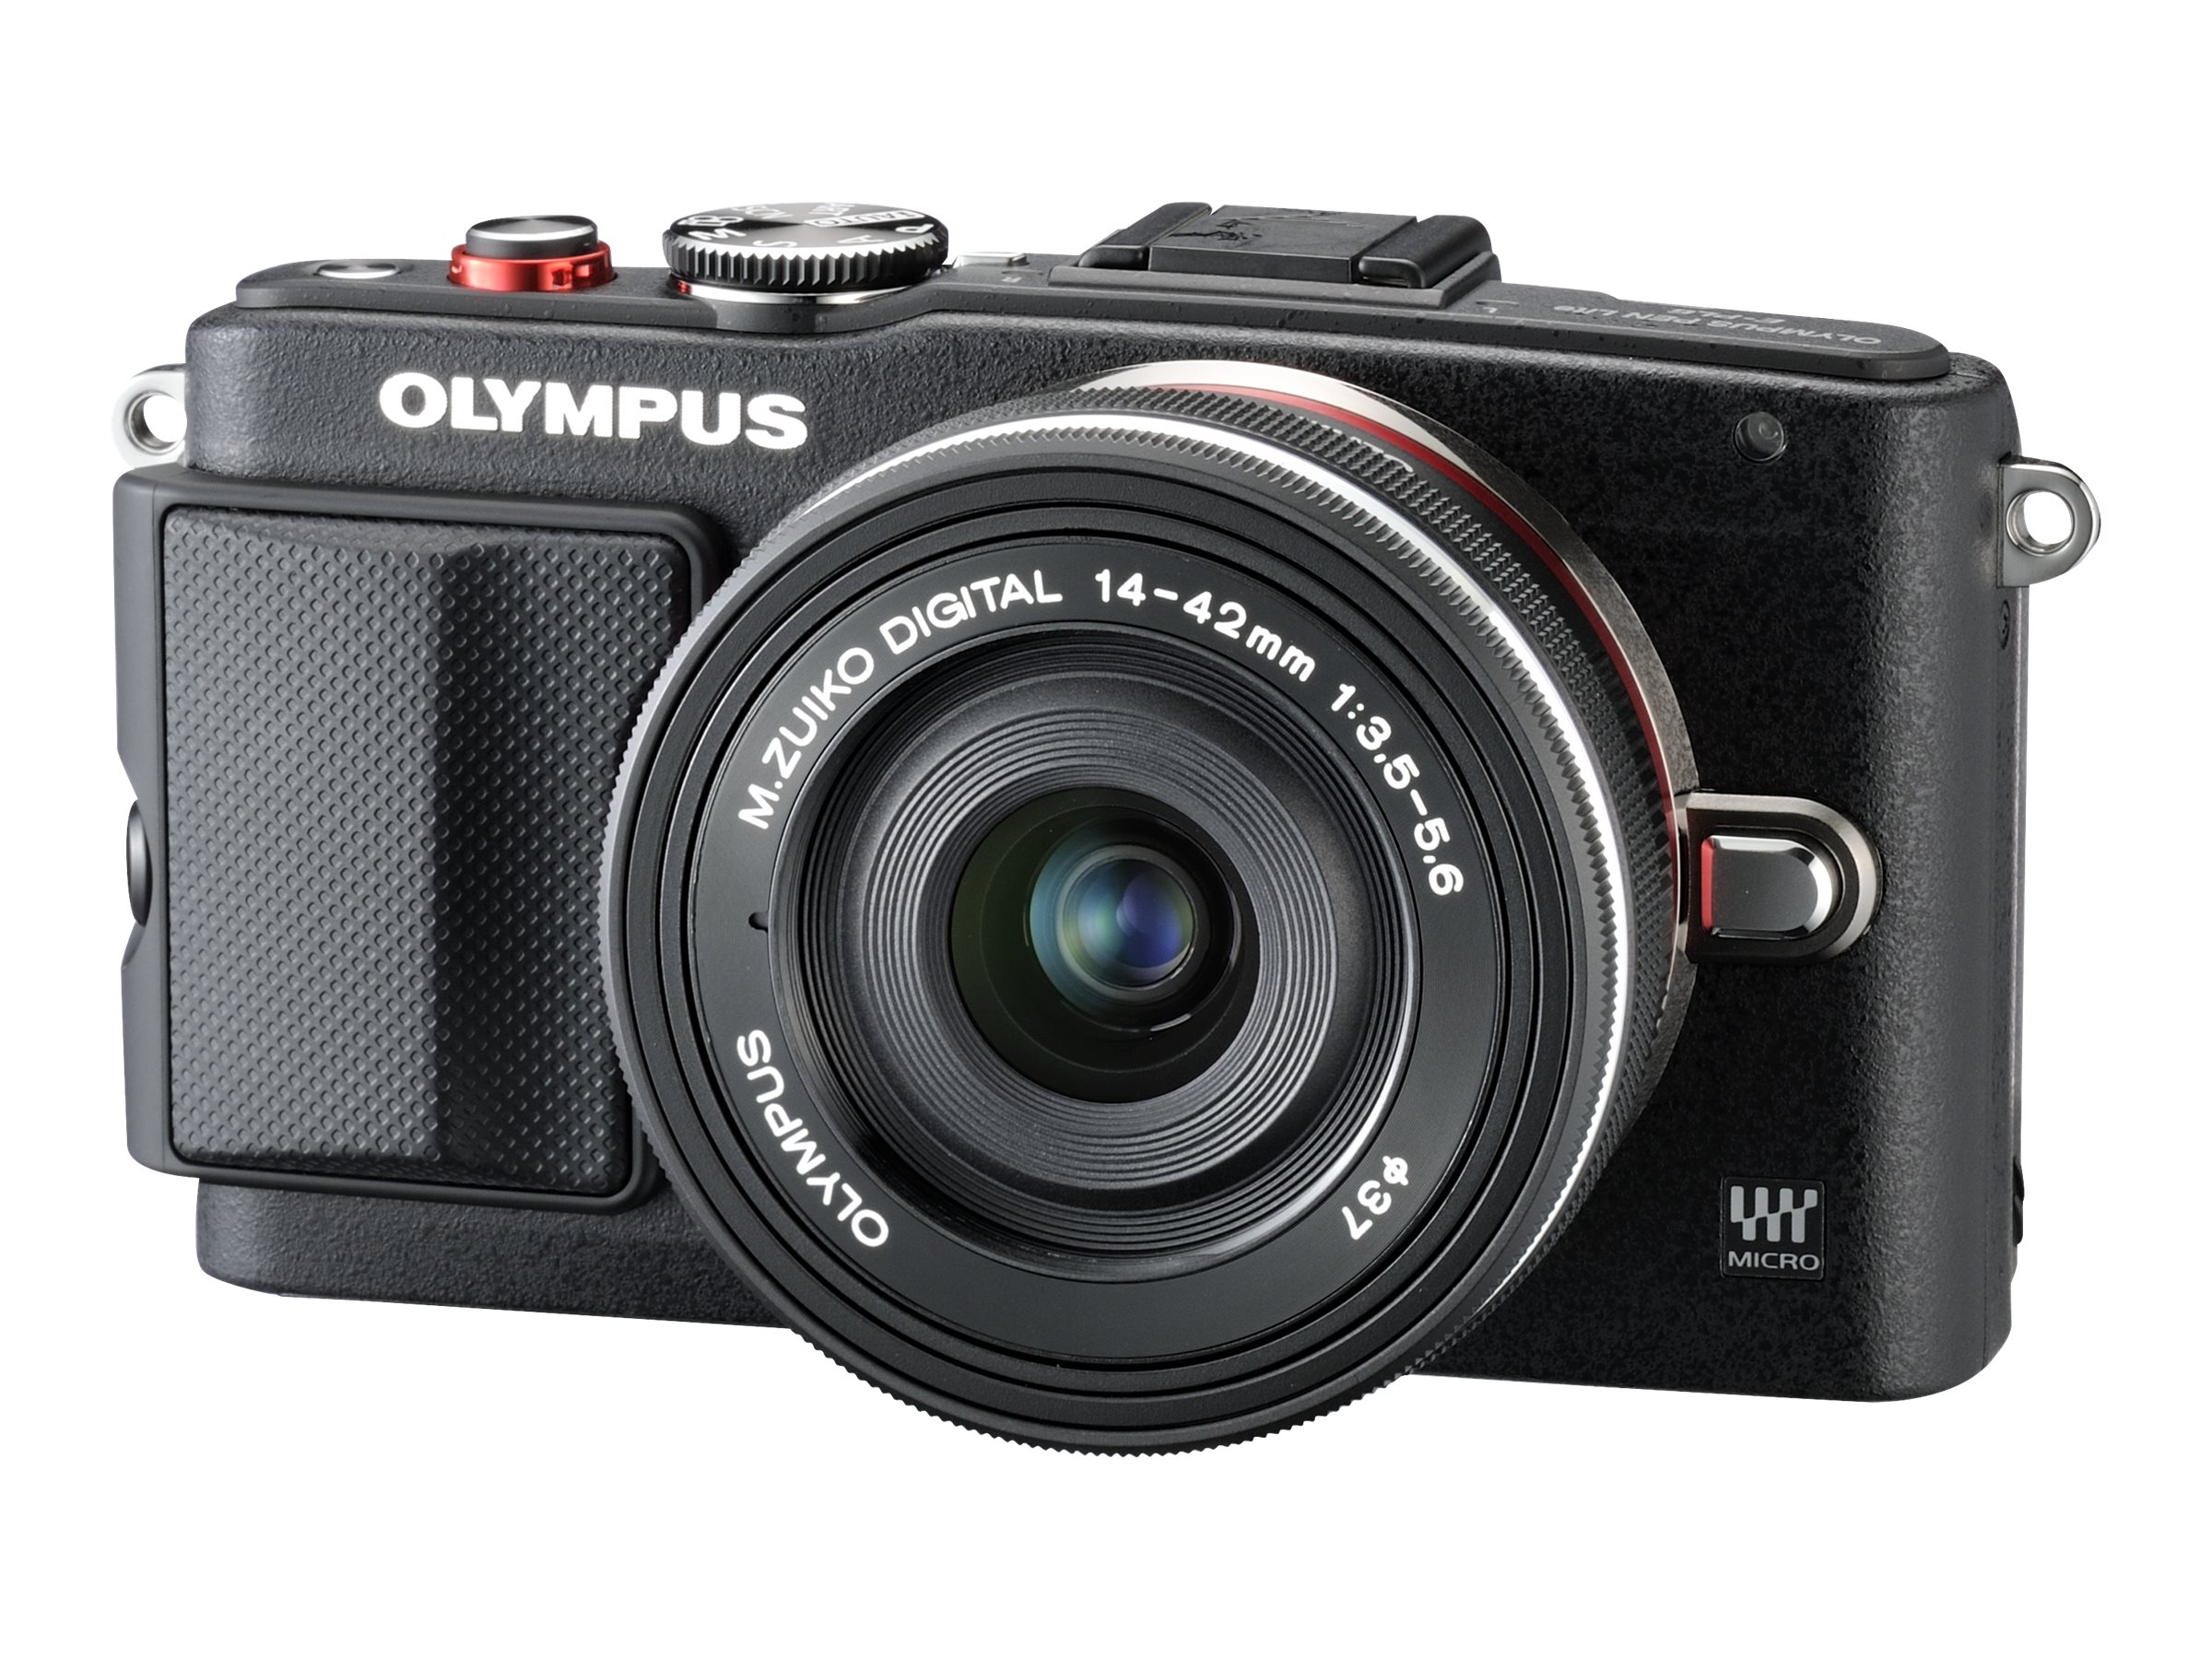 Olympus E-PL6 Mirrorless Digital Camera with 14-42mm f 3.5 II Lens, Black